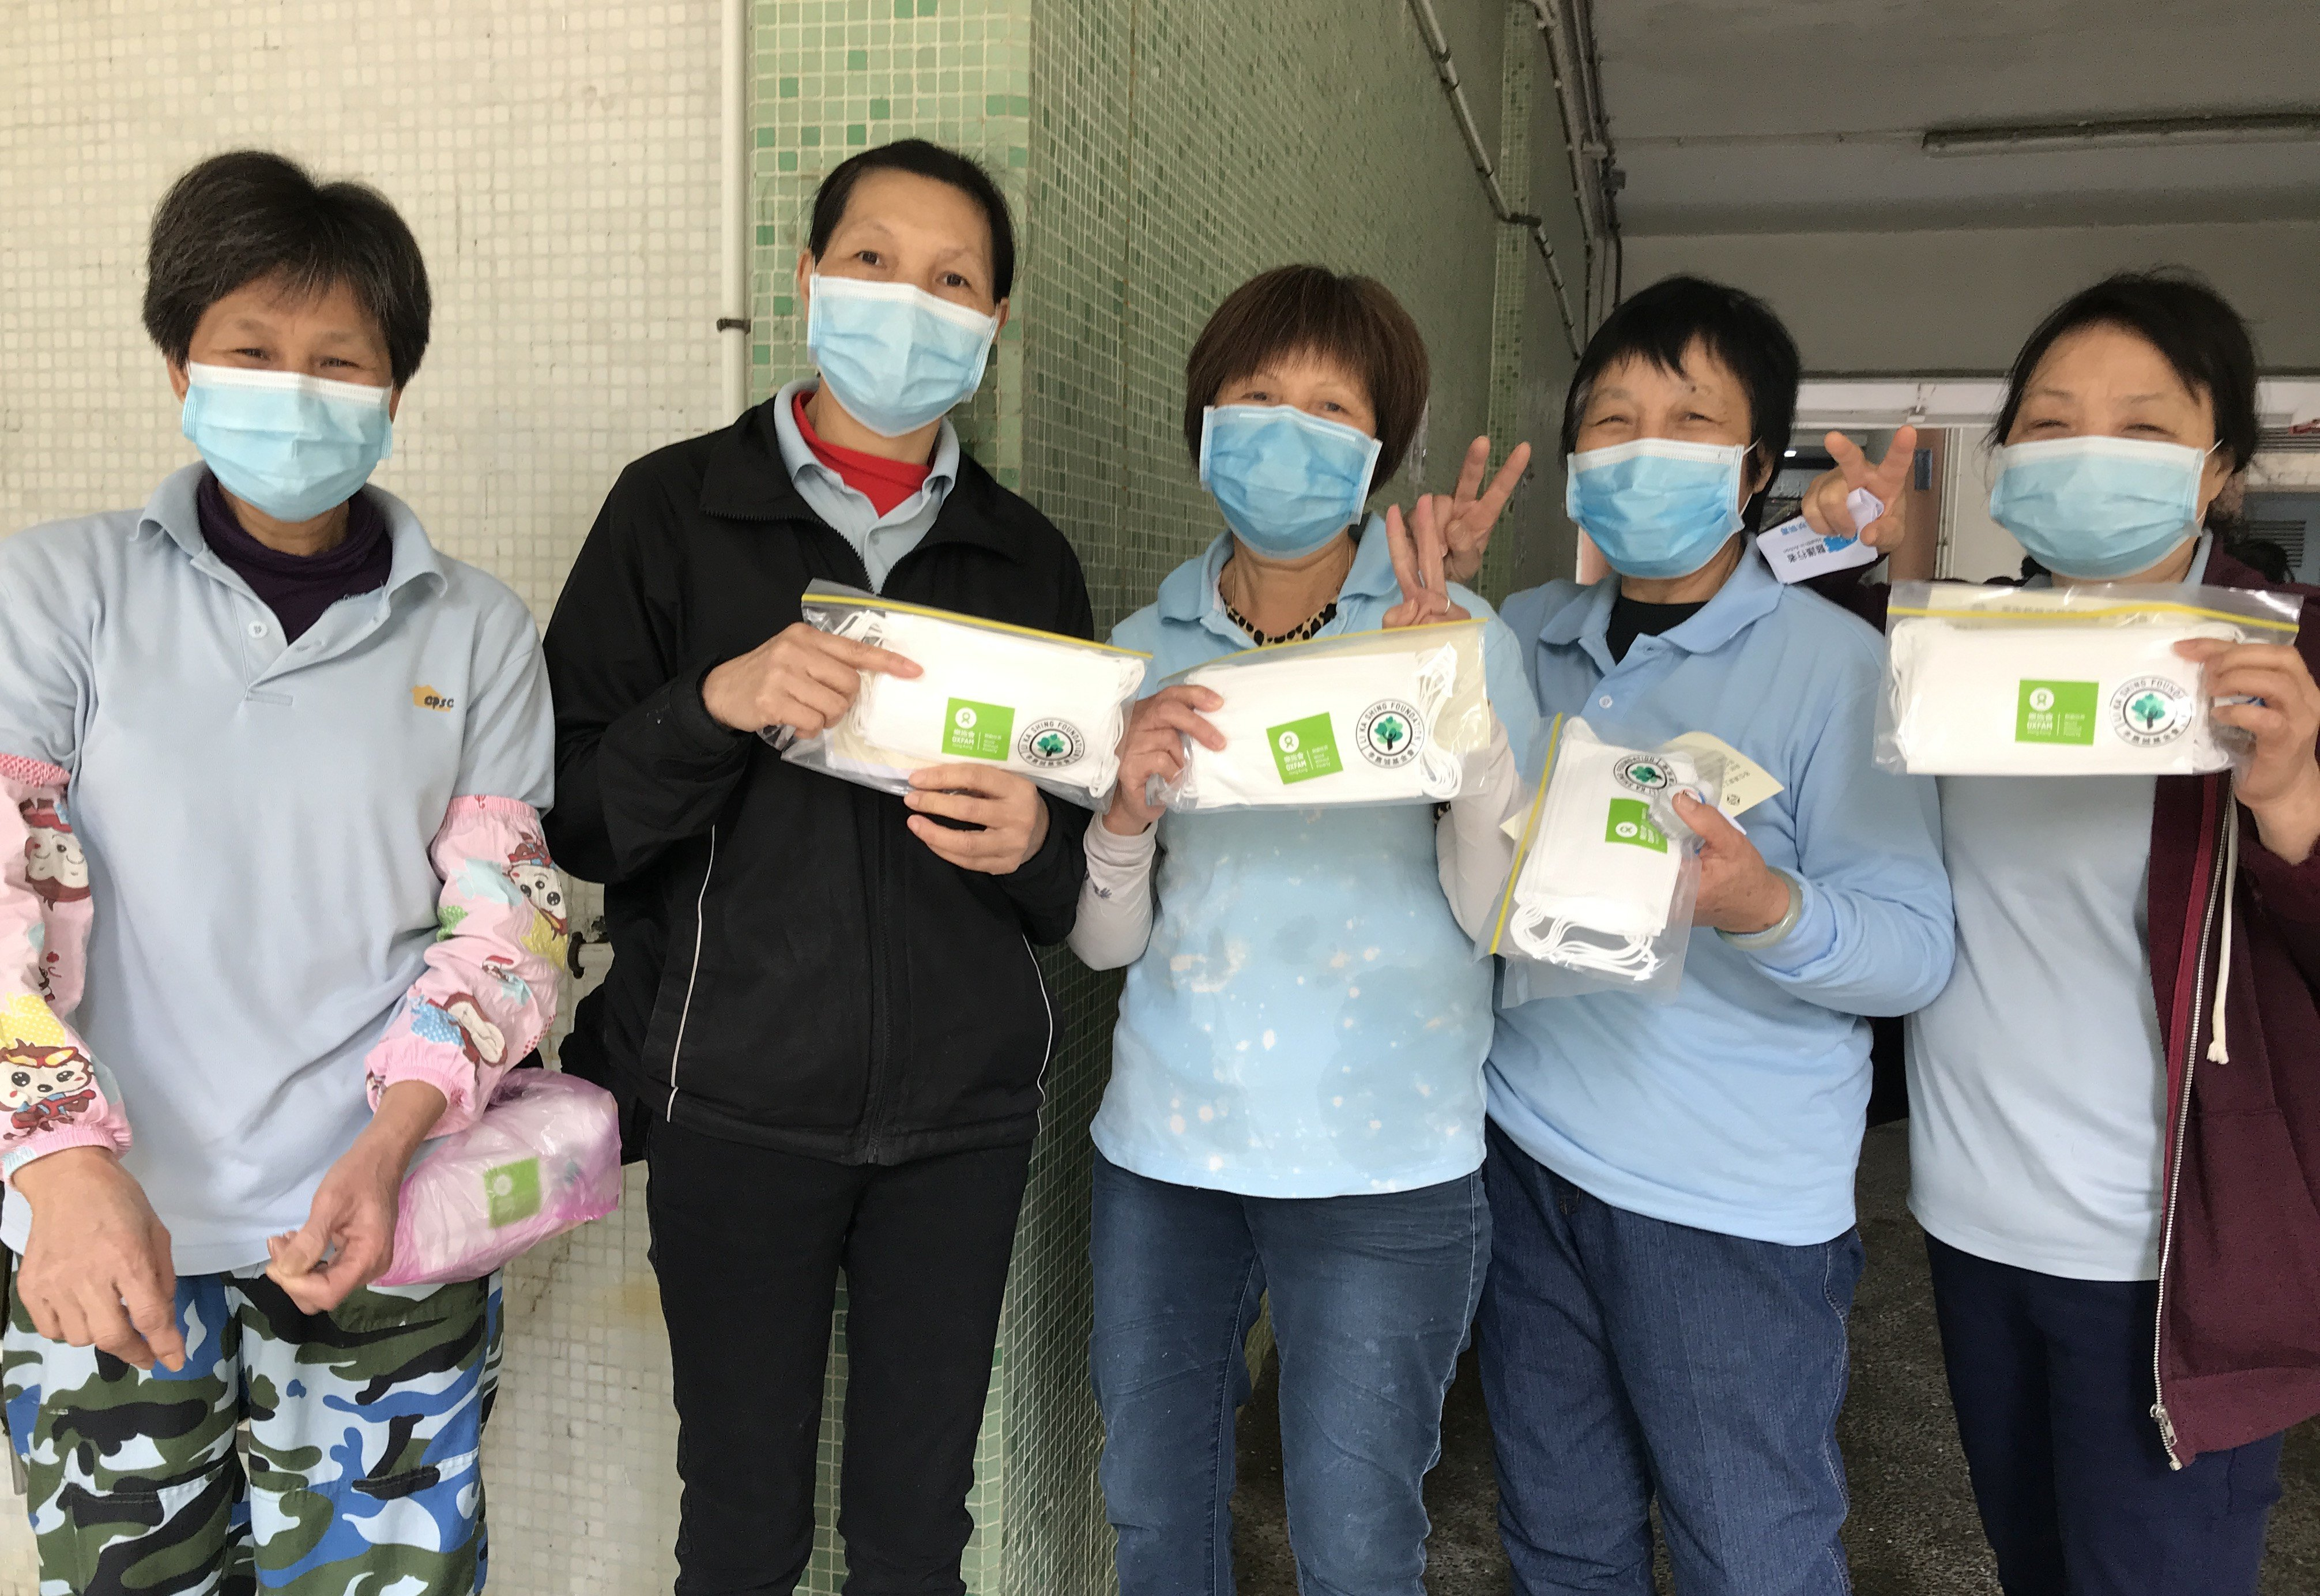 Cleaner receiving masks